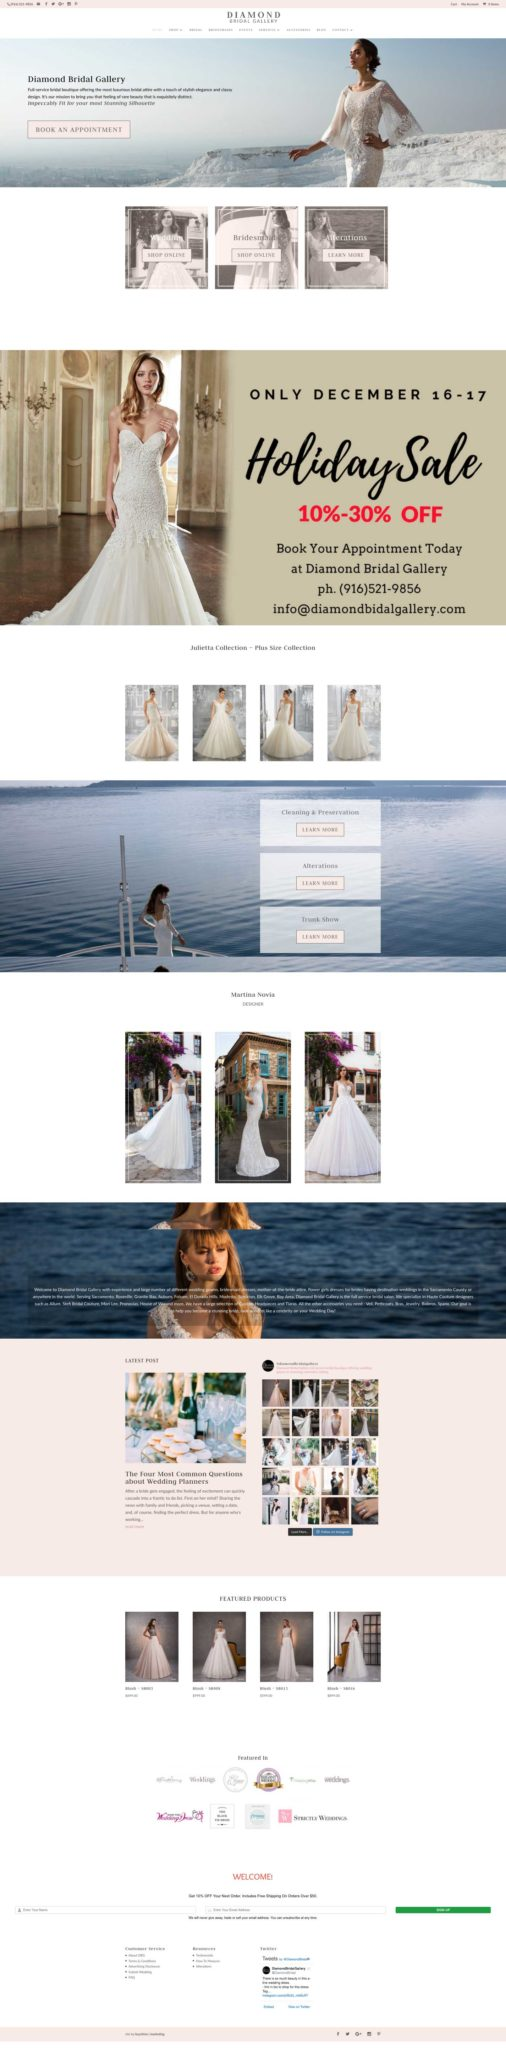 diamondbridalgallery.com_ Standalone Pricing